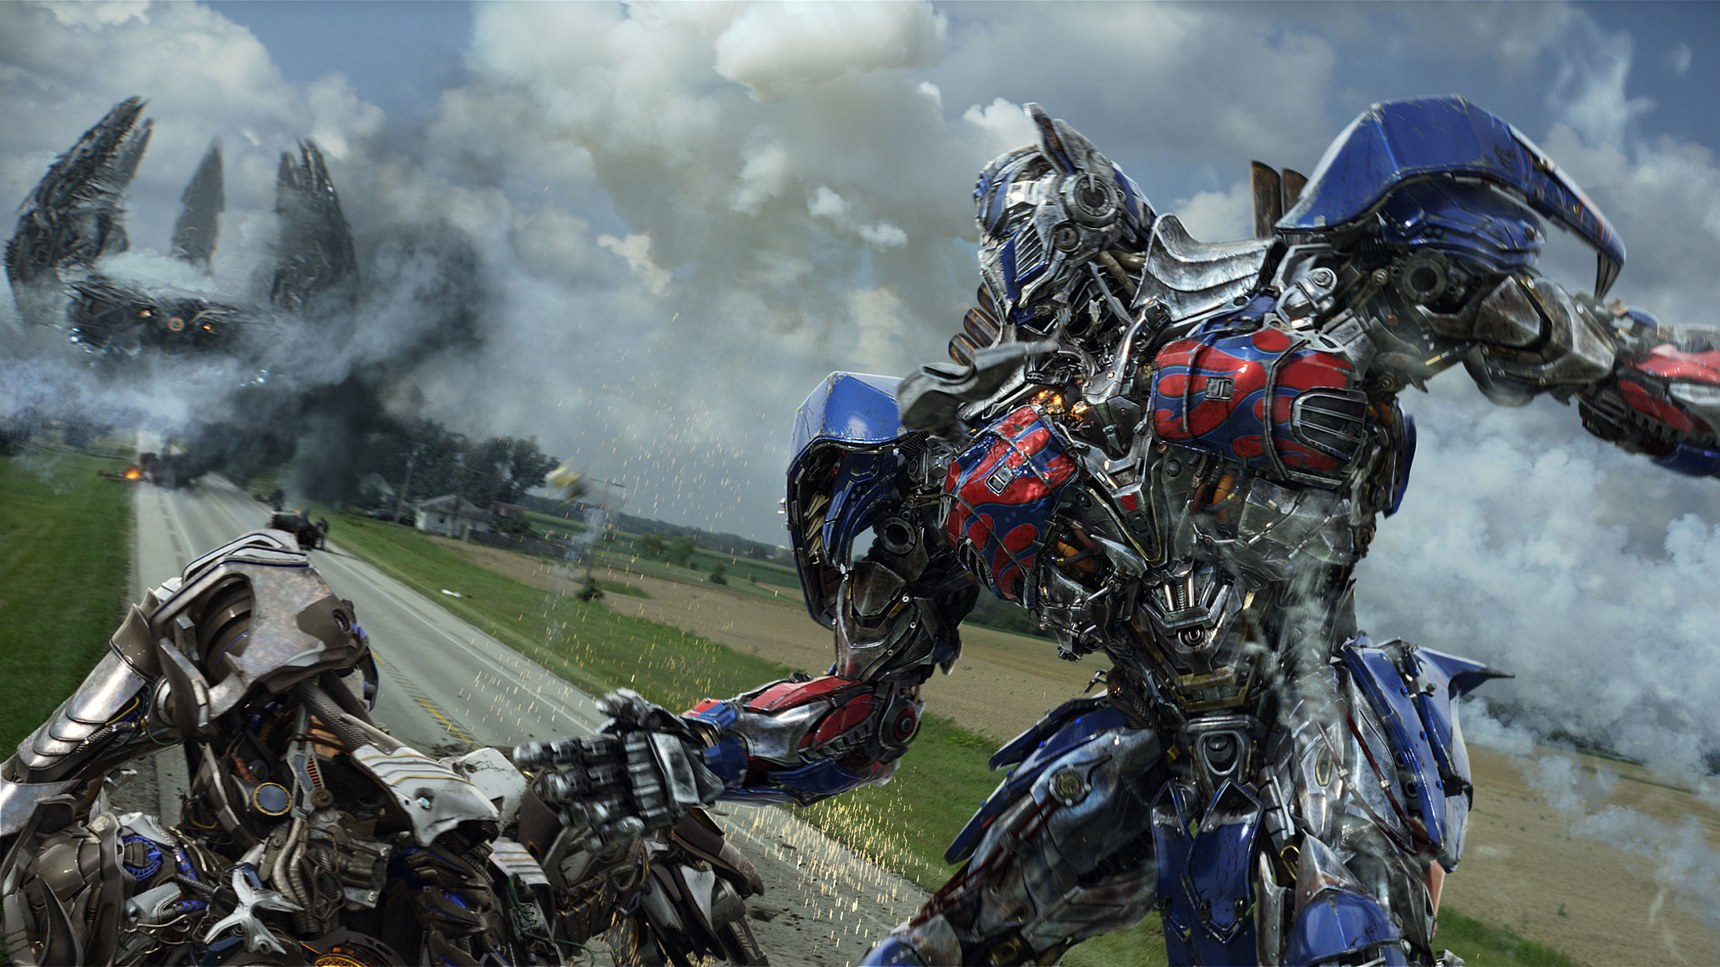 1720x967 > Age Of Extinction Wallpapers